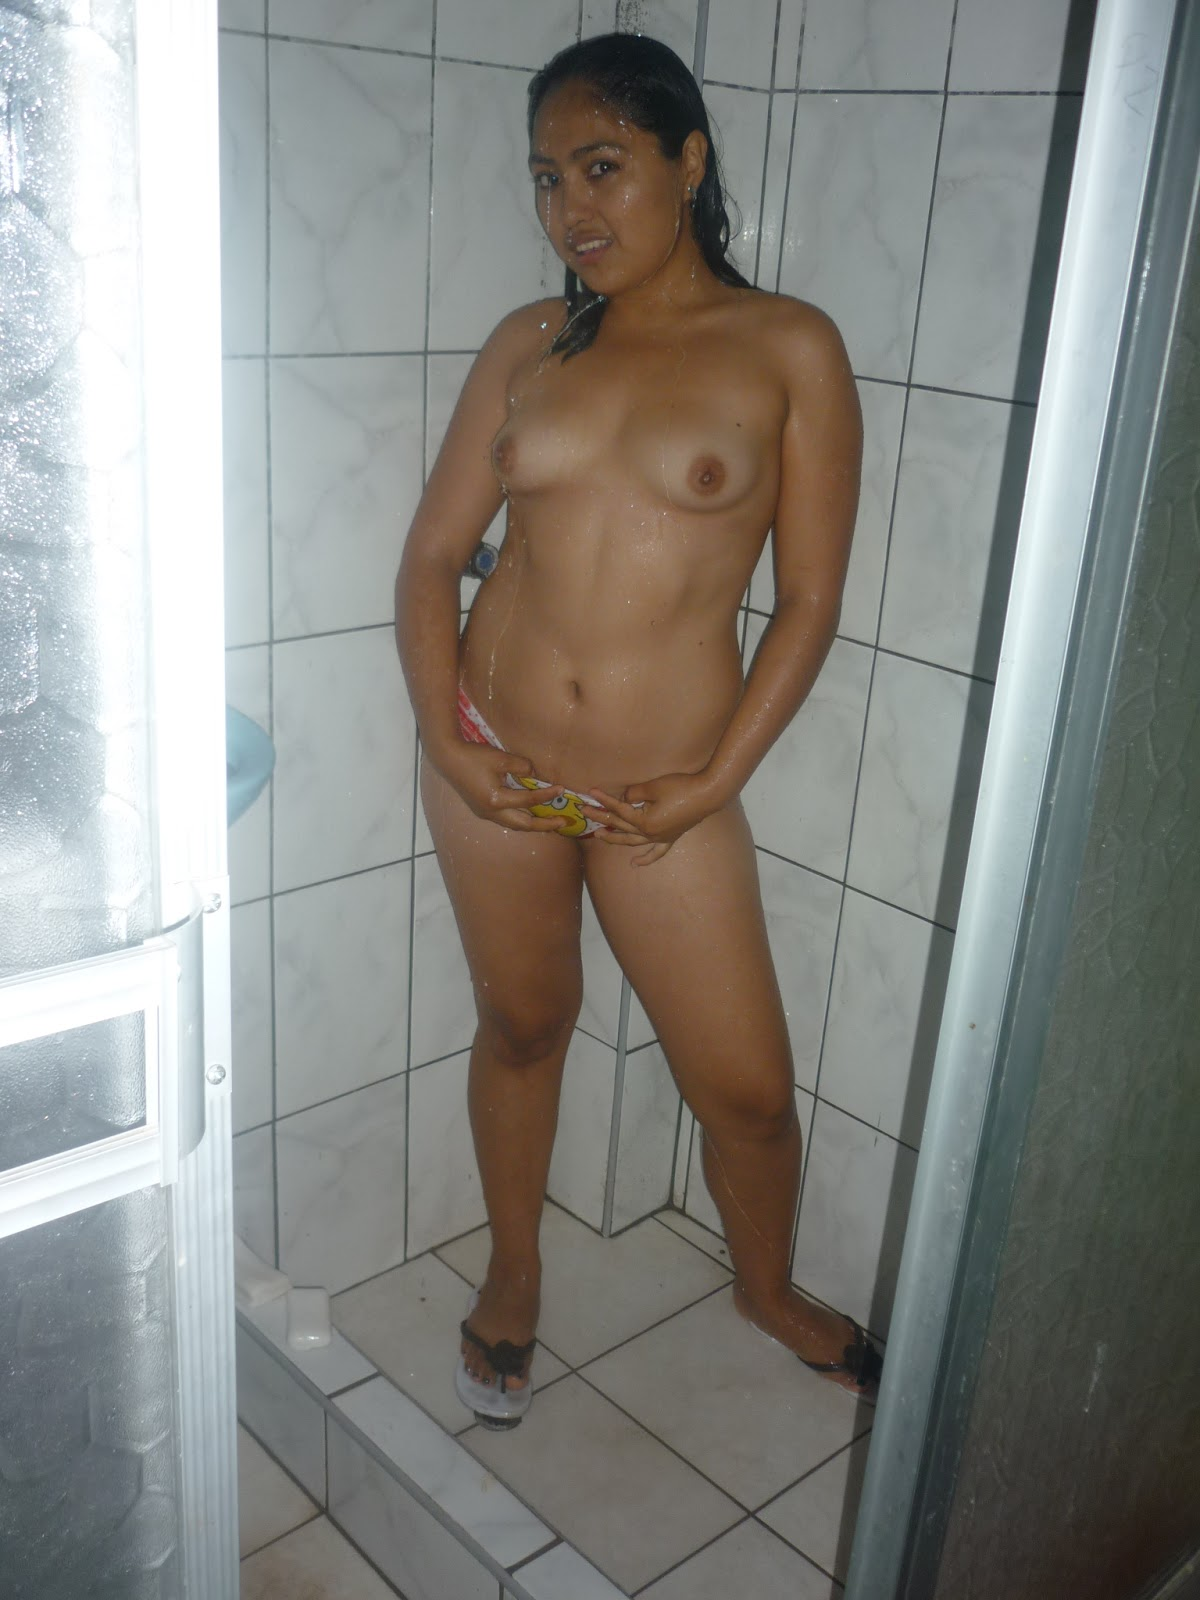 peruanas cacheras escorts web